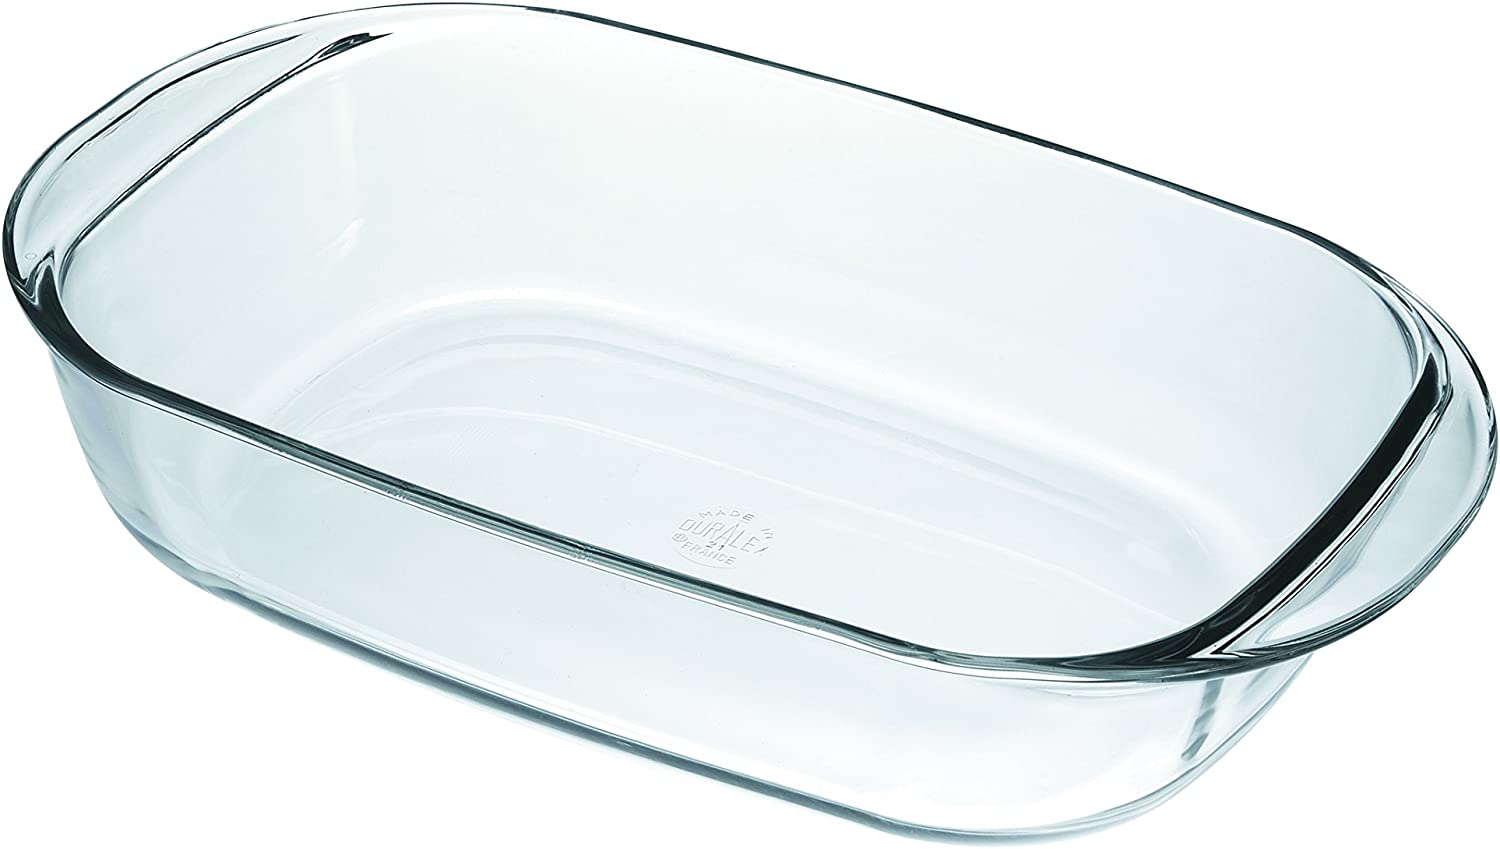 Duralex Made In France OvenChef Rectangular Baking Dish, 13 by 8-Inch